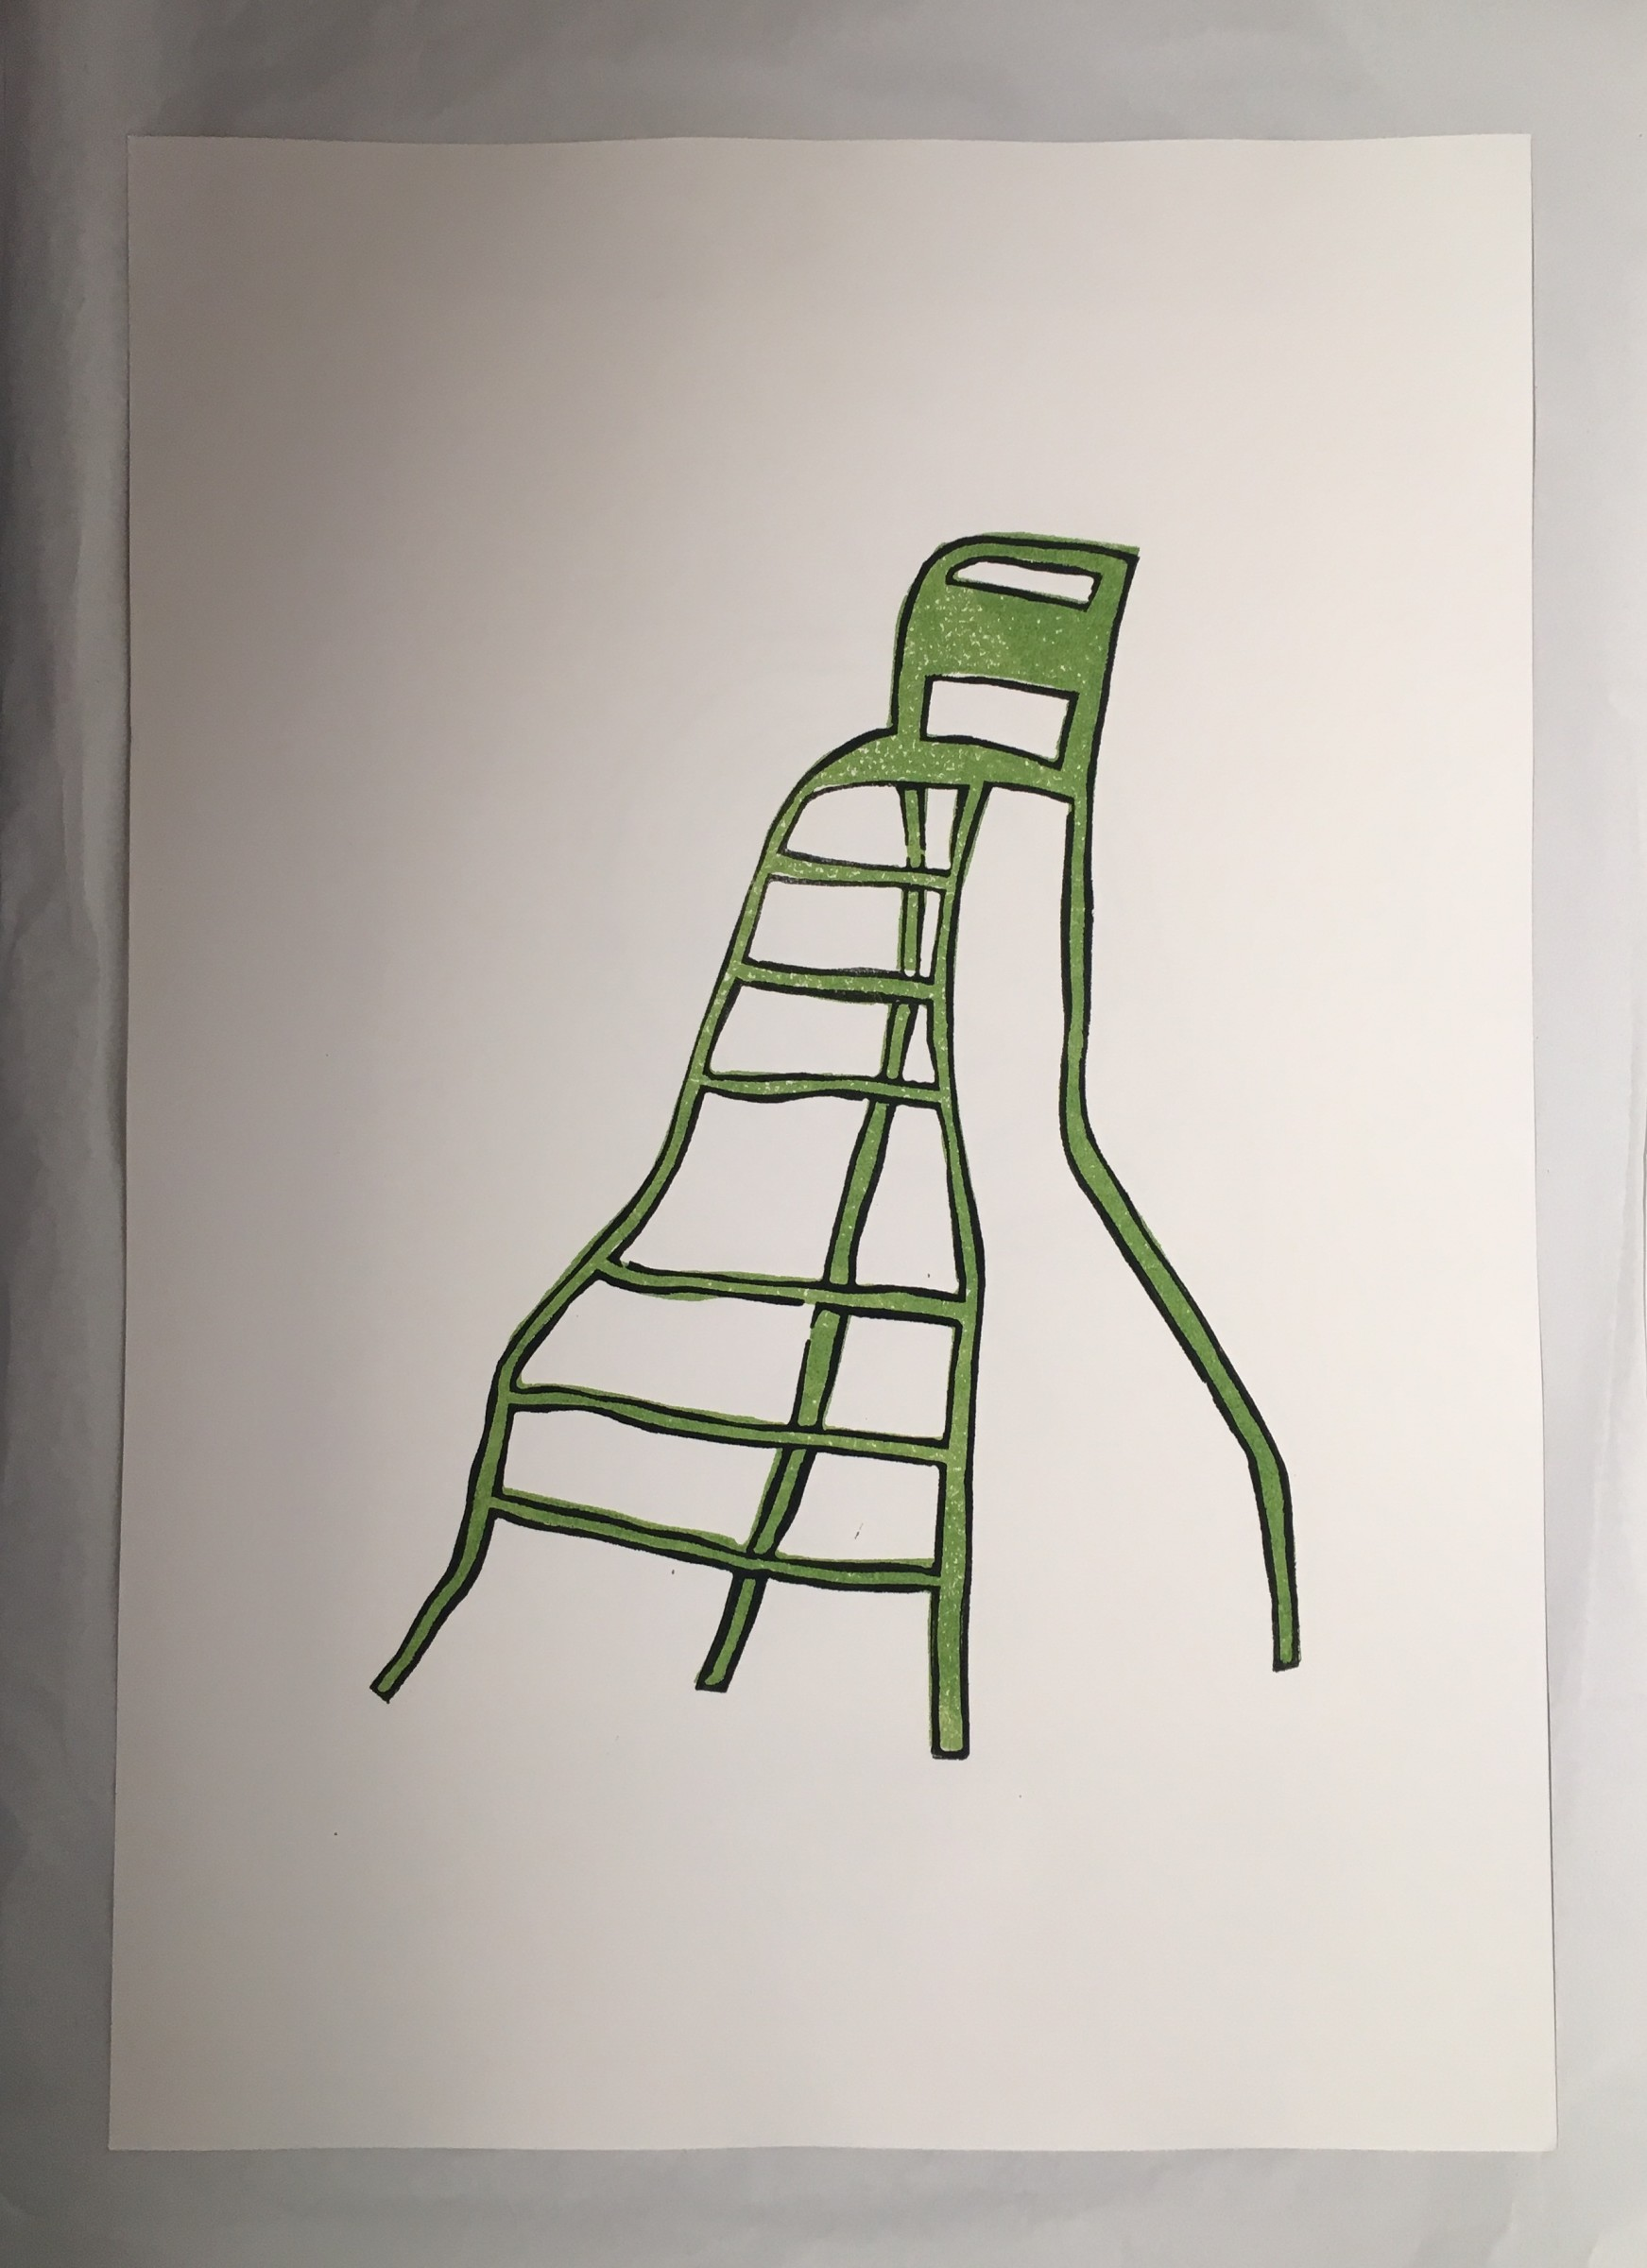 <span class=&#34;link fancybox-details-link&#34;><a href=&#34;/artists/45-bart-eysink-smeets/works/5142-bart-eysink-smeets-green-chair-print-2018/&#34;>View Detail Page</a></span><div class=&#34;artist&#34;><strong>Bart Eysink Smeets</strong></div> <div class=&#34;title&#34;><em>Green Chair print</em>, 2018</div> <div class=&#34;dimensions&#34;>60 x 42 cm</div> <div class=&#34;edition_details&#34;>Edition of 10</div><div class=&#34;price&#34;>€50.00</div>